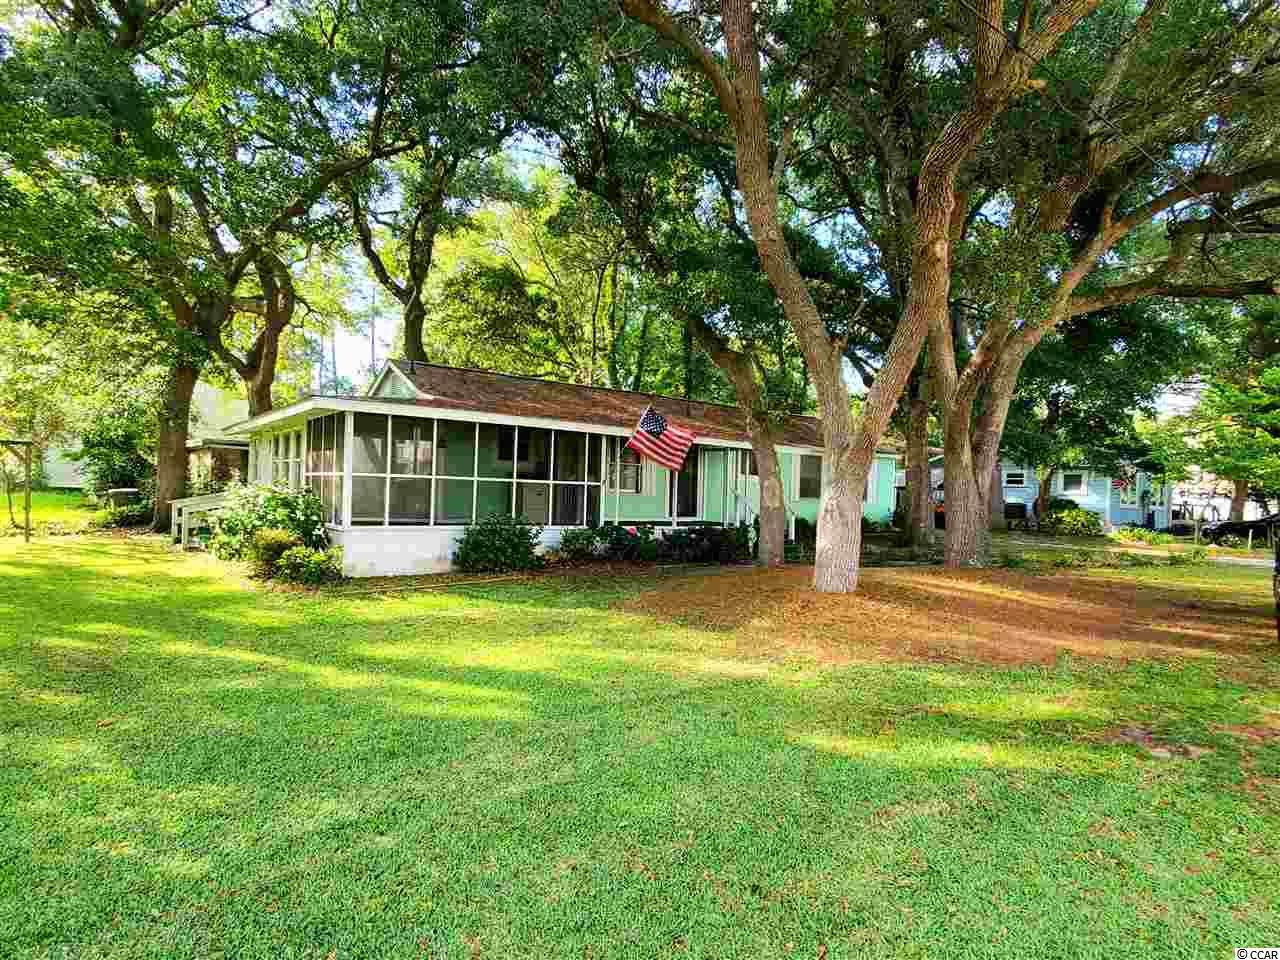 WOW!!  Here is the chance to own a charming home with tons of character.  Being one of the first homes built in Surfside beach, this home has made it through everything!  Just imagine if these walls could talk!  Walking distance/golf cart distance to beach, restaurants along Surfside Drive and at the beach, and much more!  The mature trees and oaks that shade the lot on hot summer days add so much charm and beauty to this perfect beach cottage.  Need an affordable Surfside Home?  Here it is, don't wait!